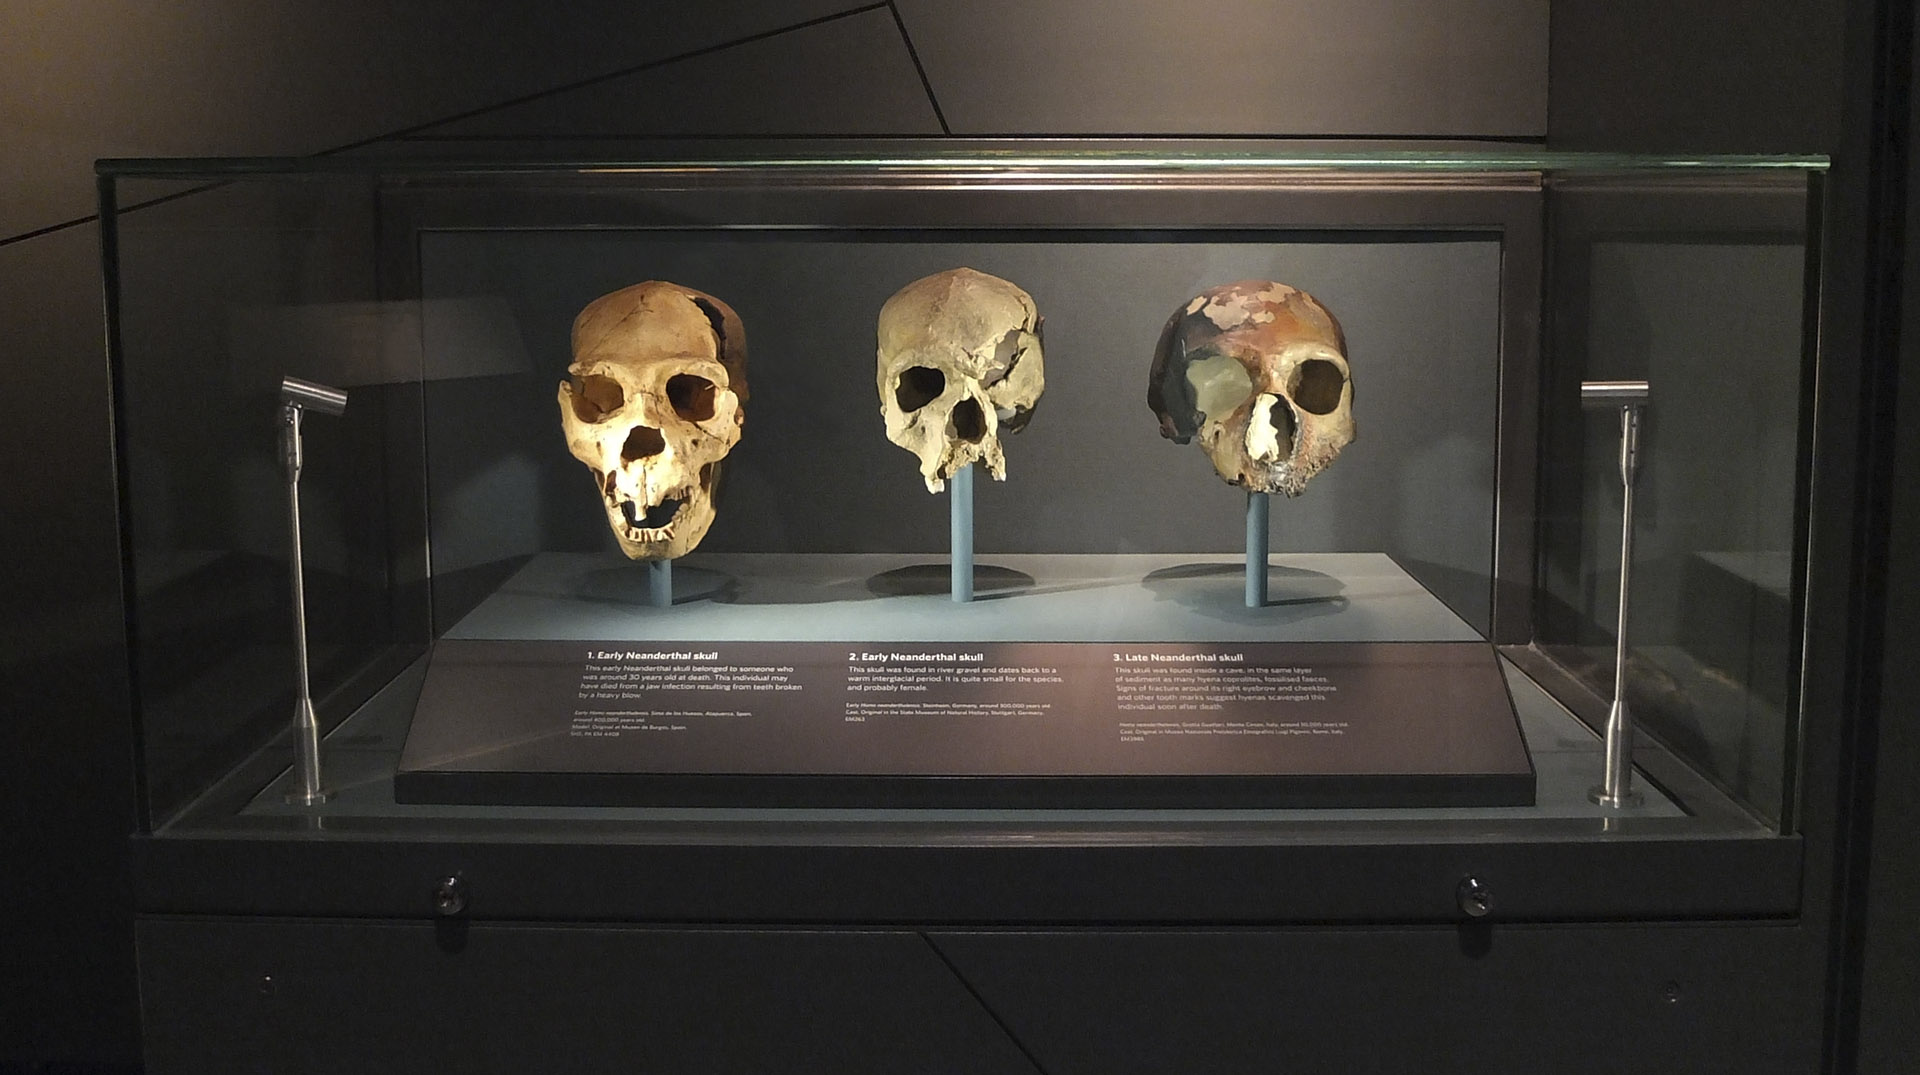 a history of the discoveries about the origins of humans Founded in 1981 by donald johanson and moved to asu in 1997, iho blends high-profile field and analytical research on human origins with public outreach programs.